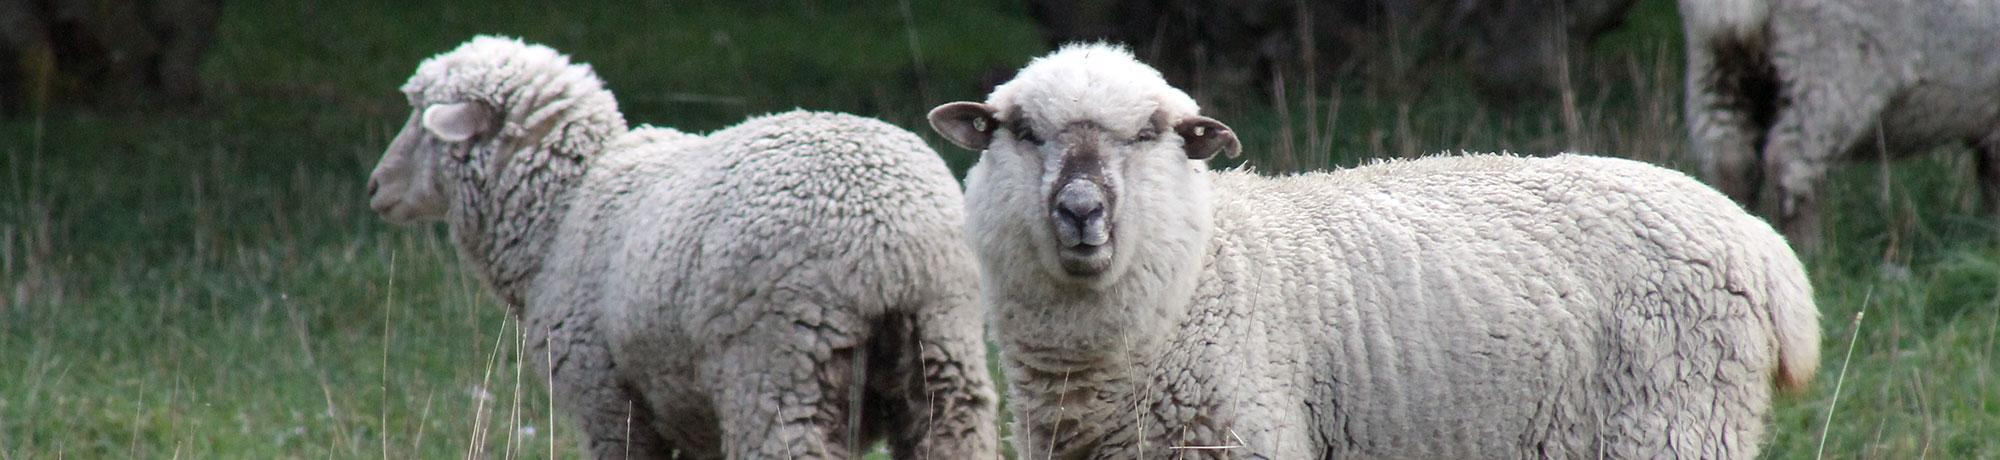 Flock of whiteface sheep outdoors